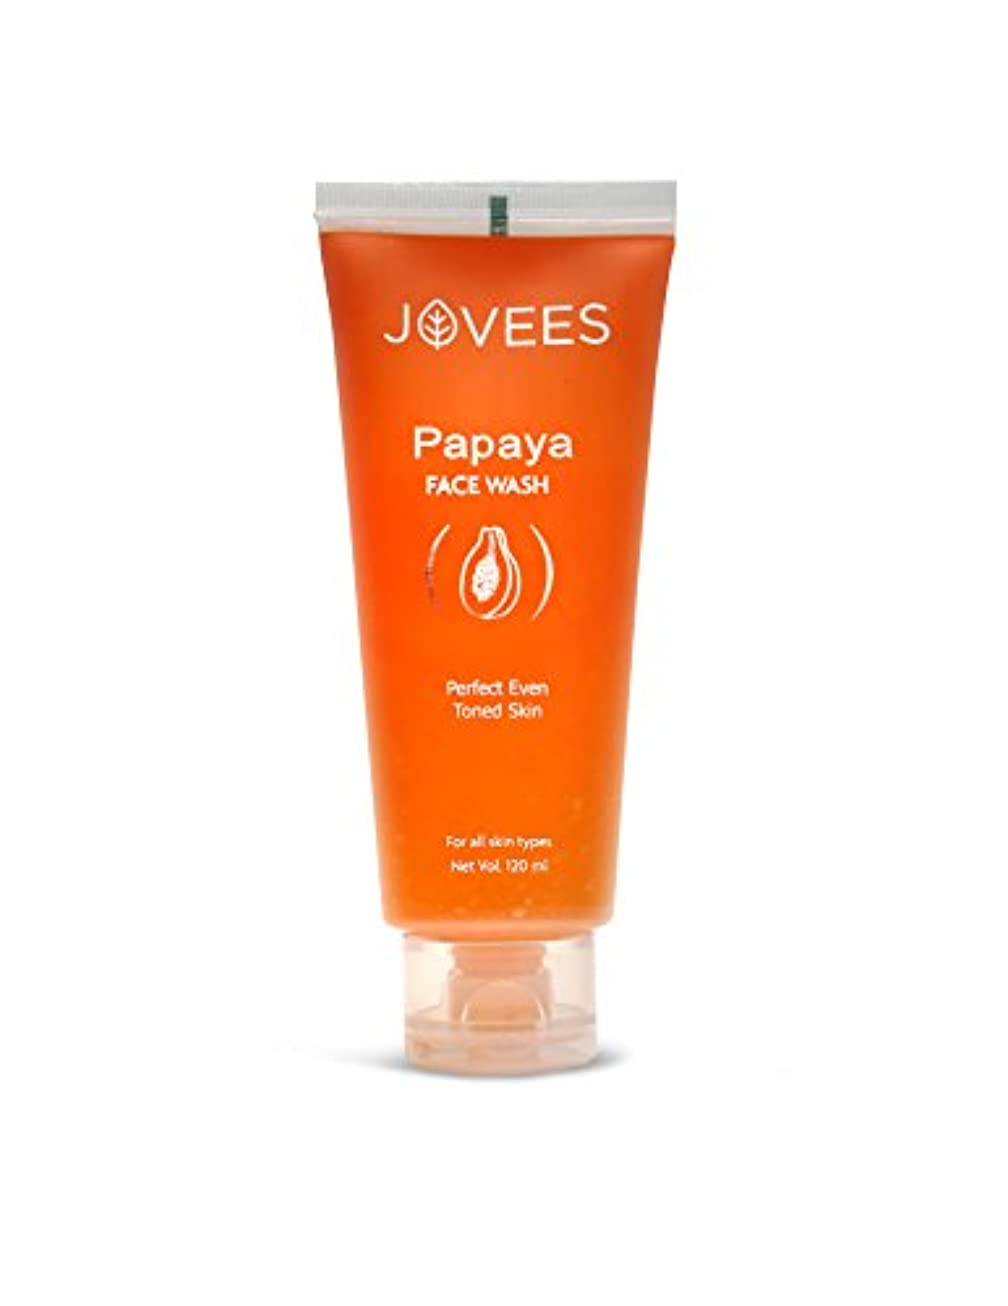 Jovees Face Wash, Papaya, 120ml